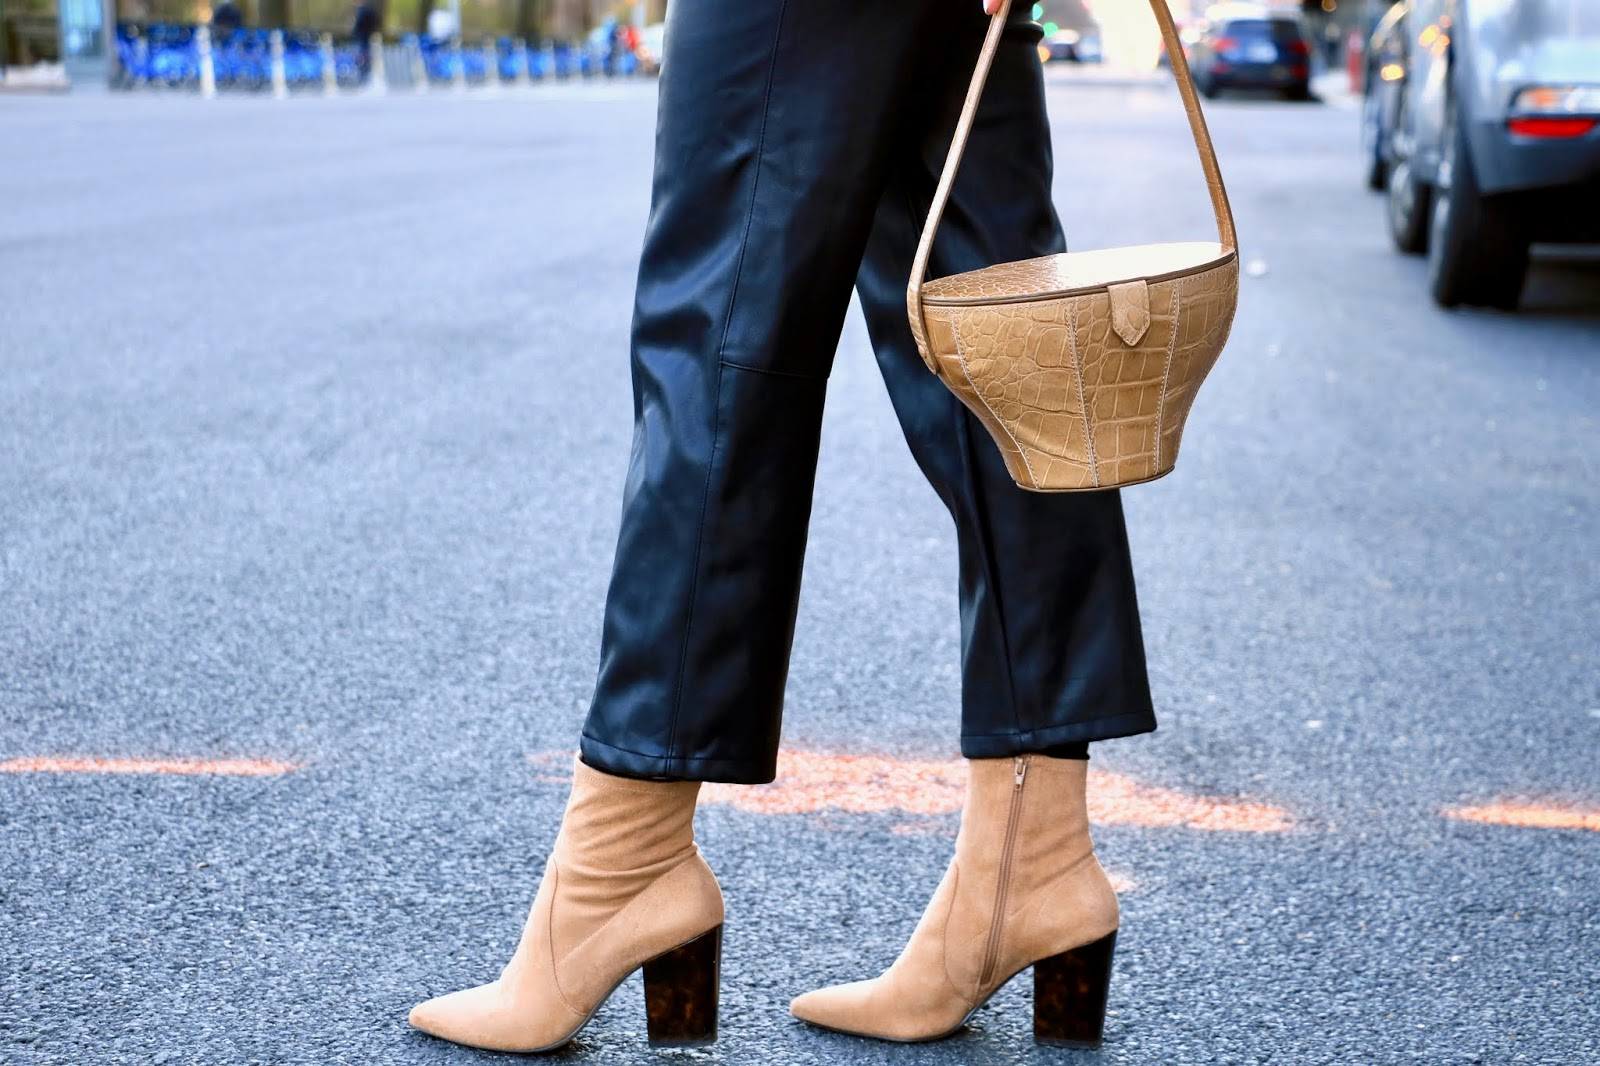 Nyc fashion blogger Kathleen Harper wearing tan sock booties and a leather Staud purse.